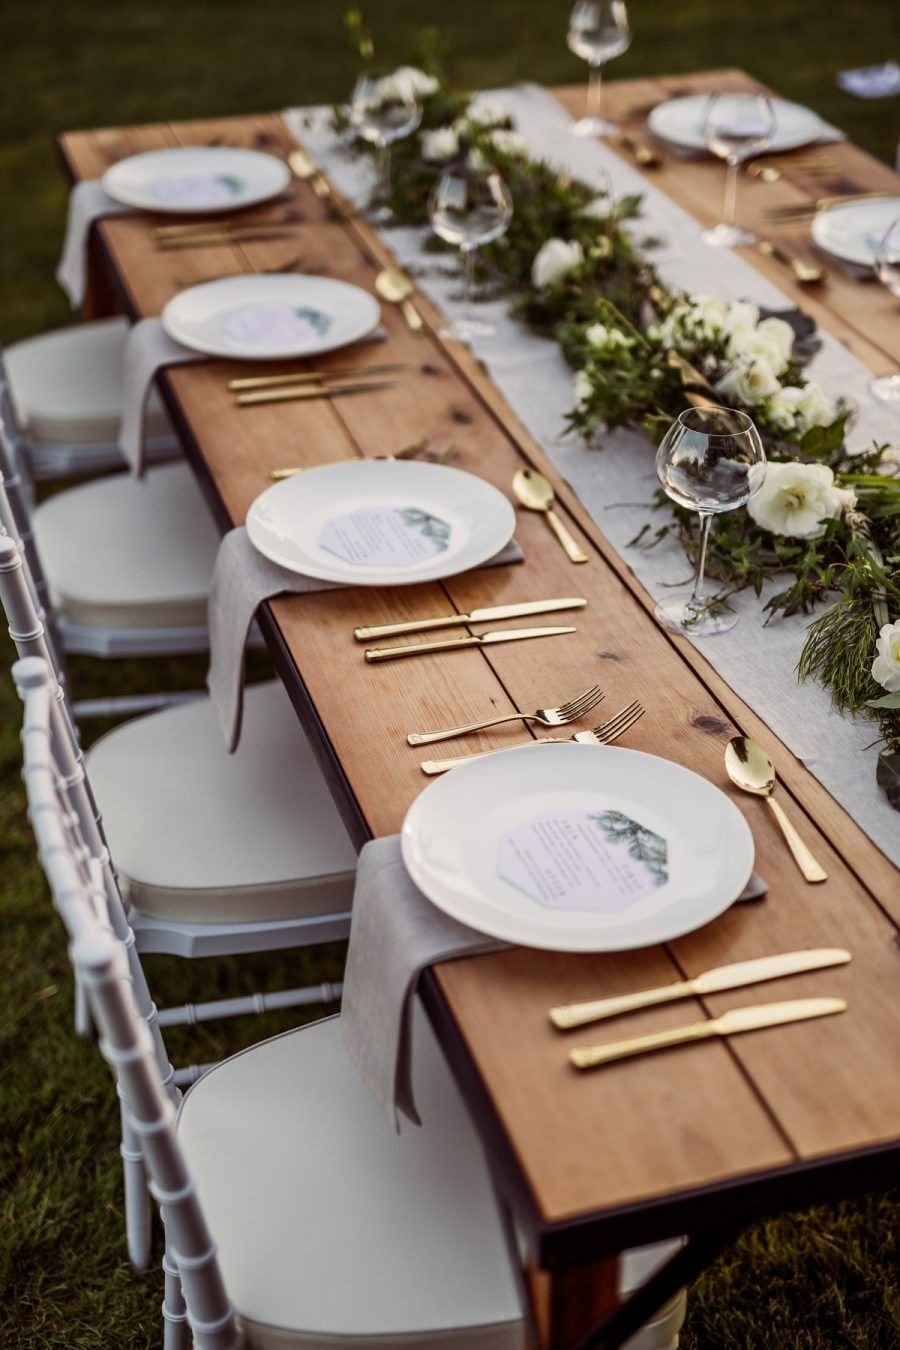 10 Cute Table Setting Ideas For Wedding wonderful 49 impressive wedding table setting ideas outdoor 2021